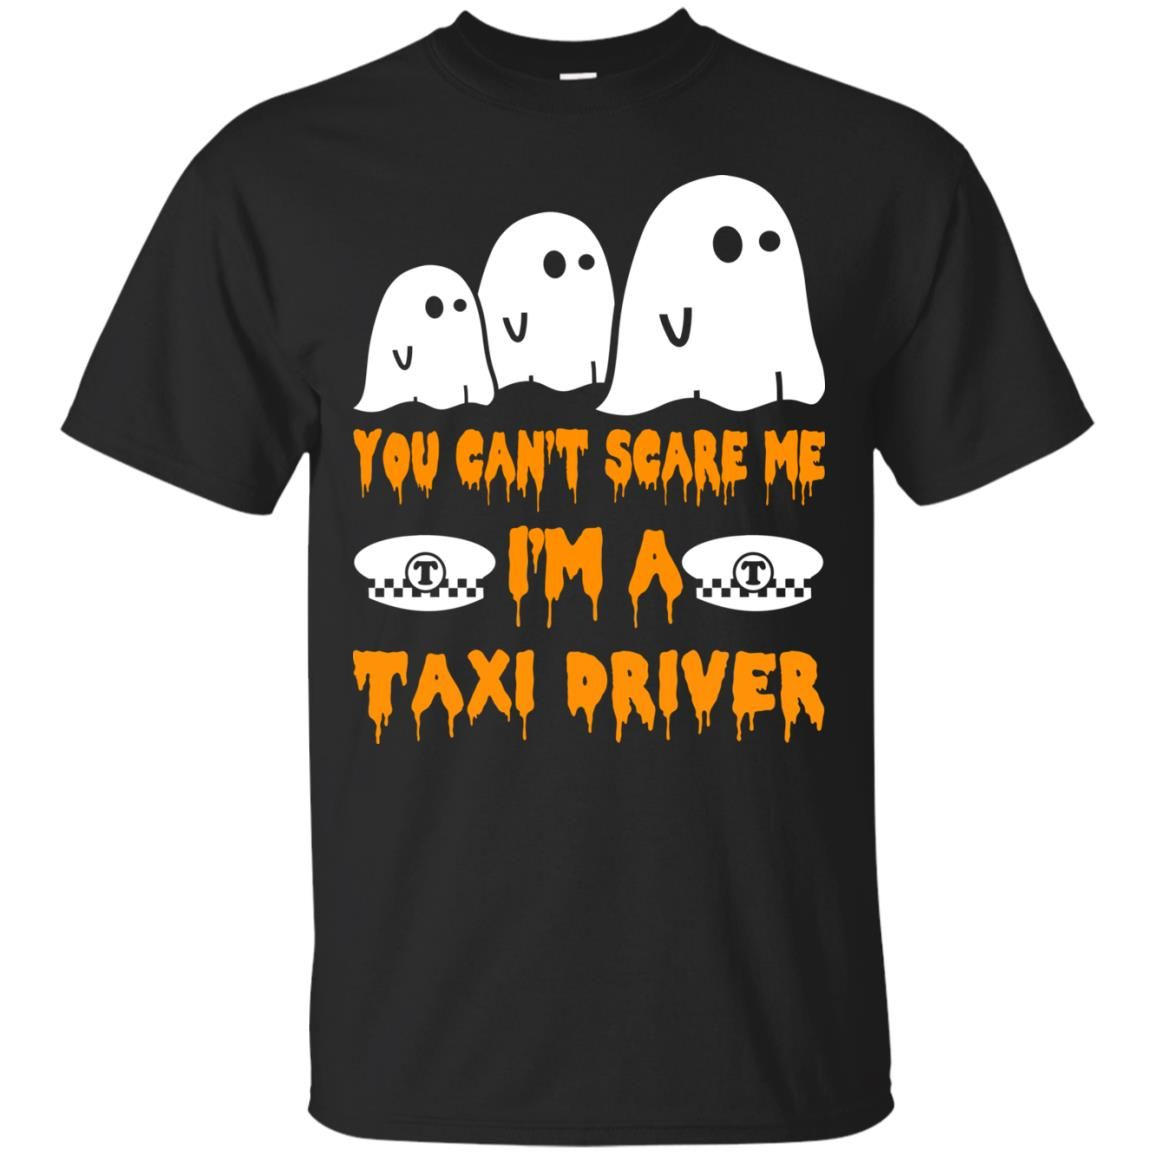 image 553 - You can't scare me I'm a Taxi Driver shirt, hoodie, tank